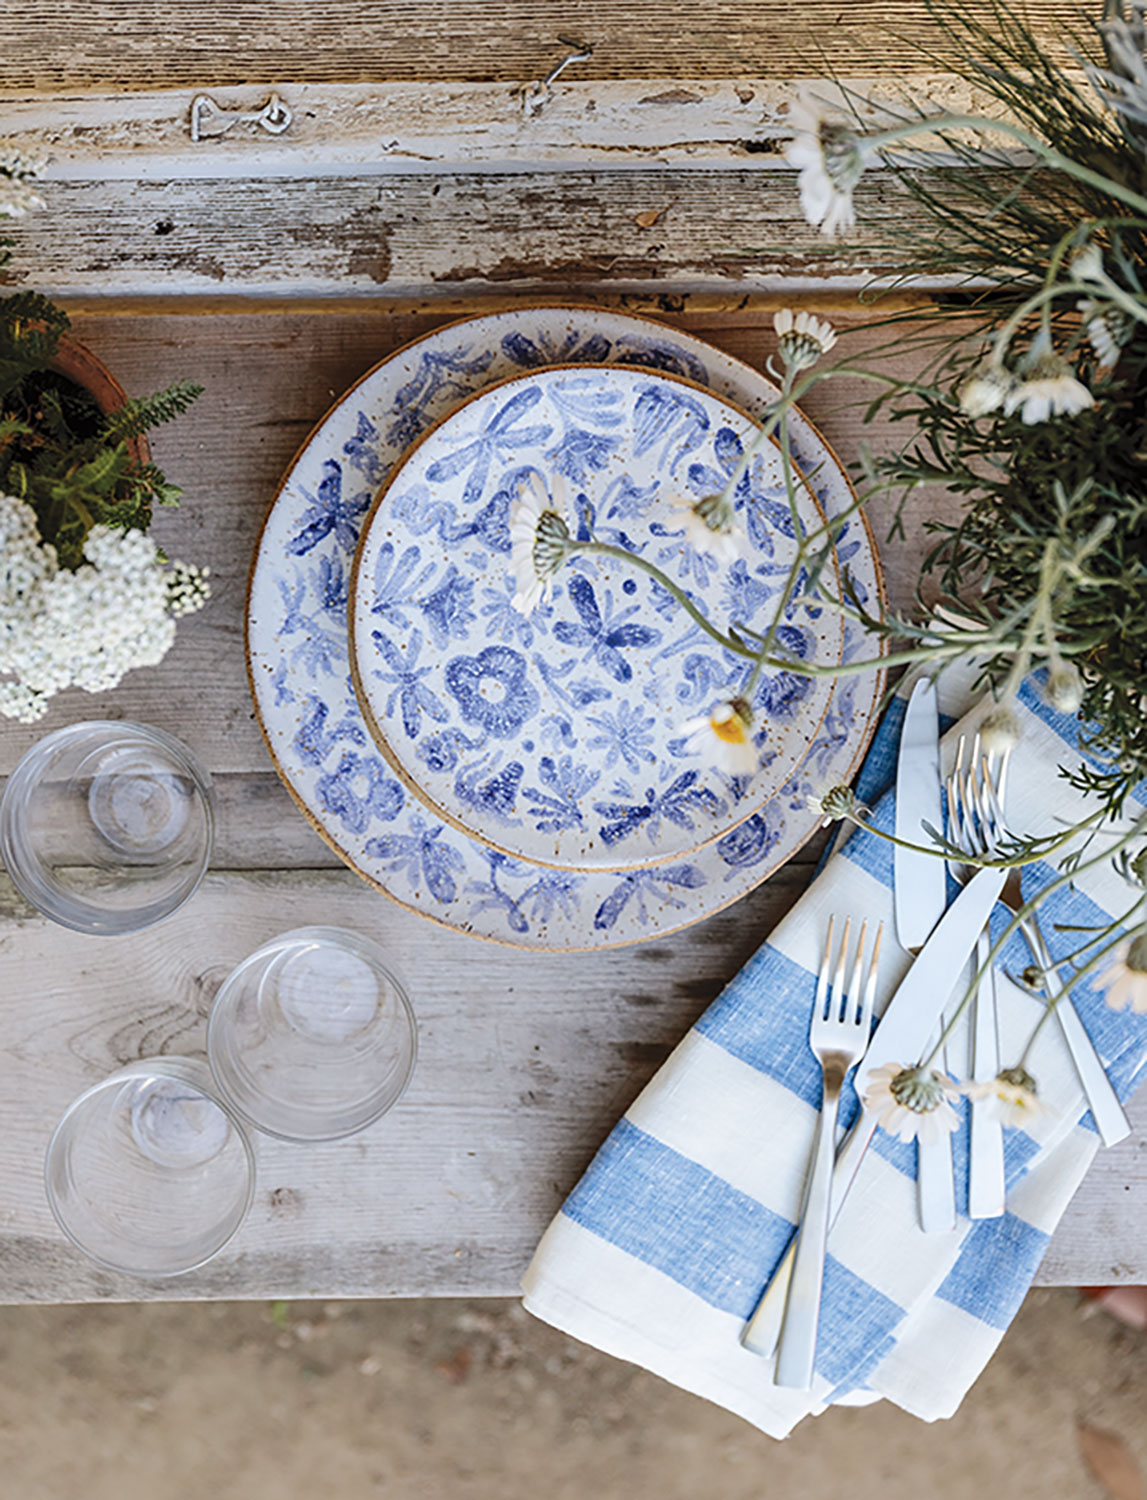 rustic blue-and-white place setting